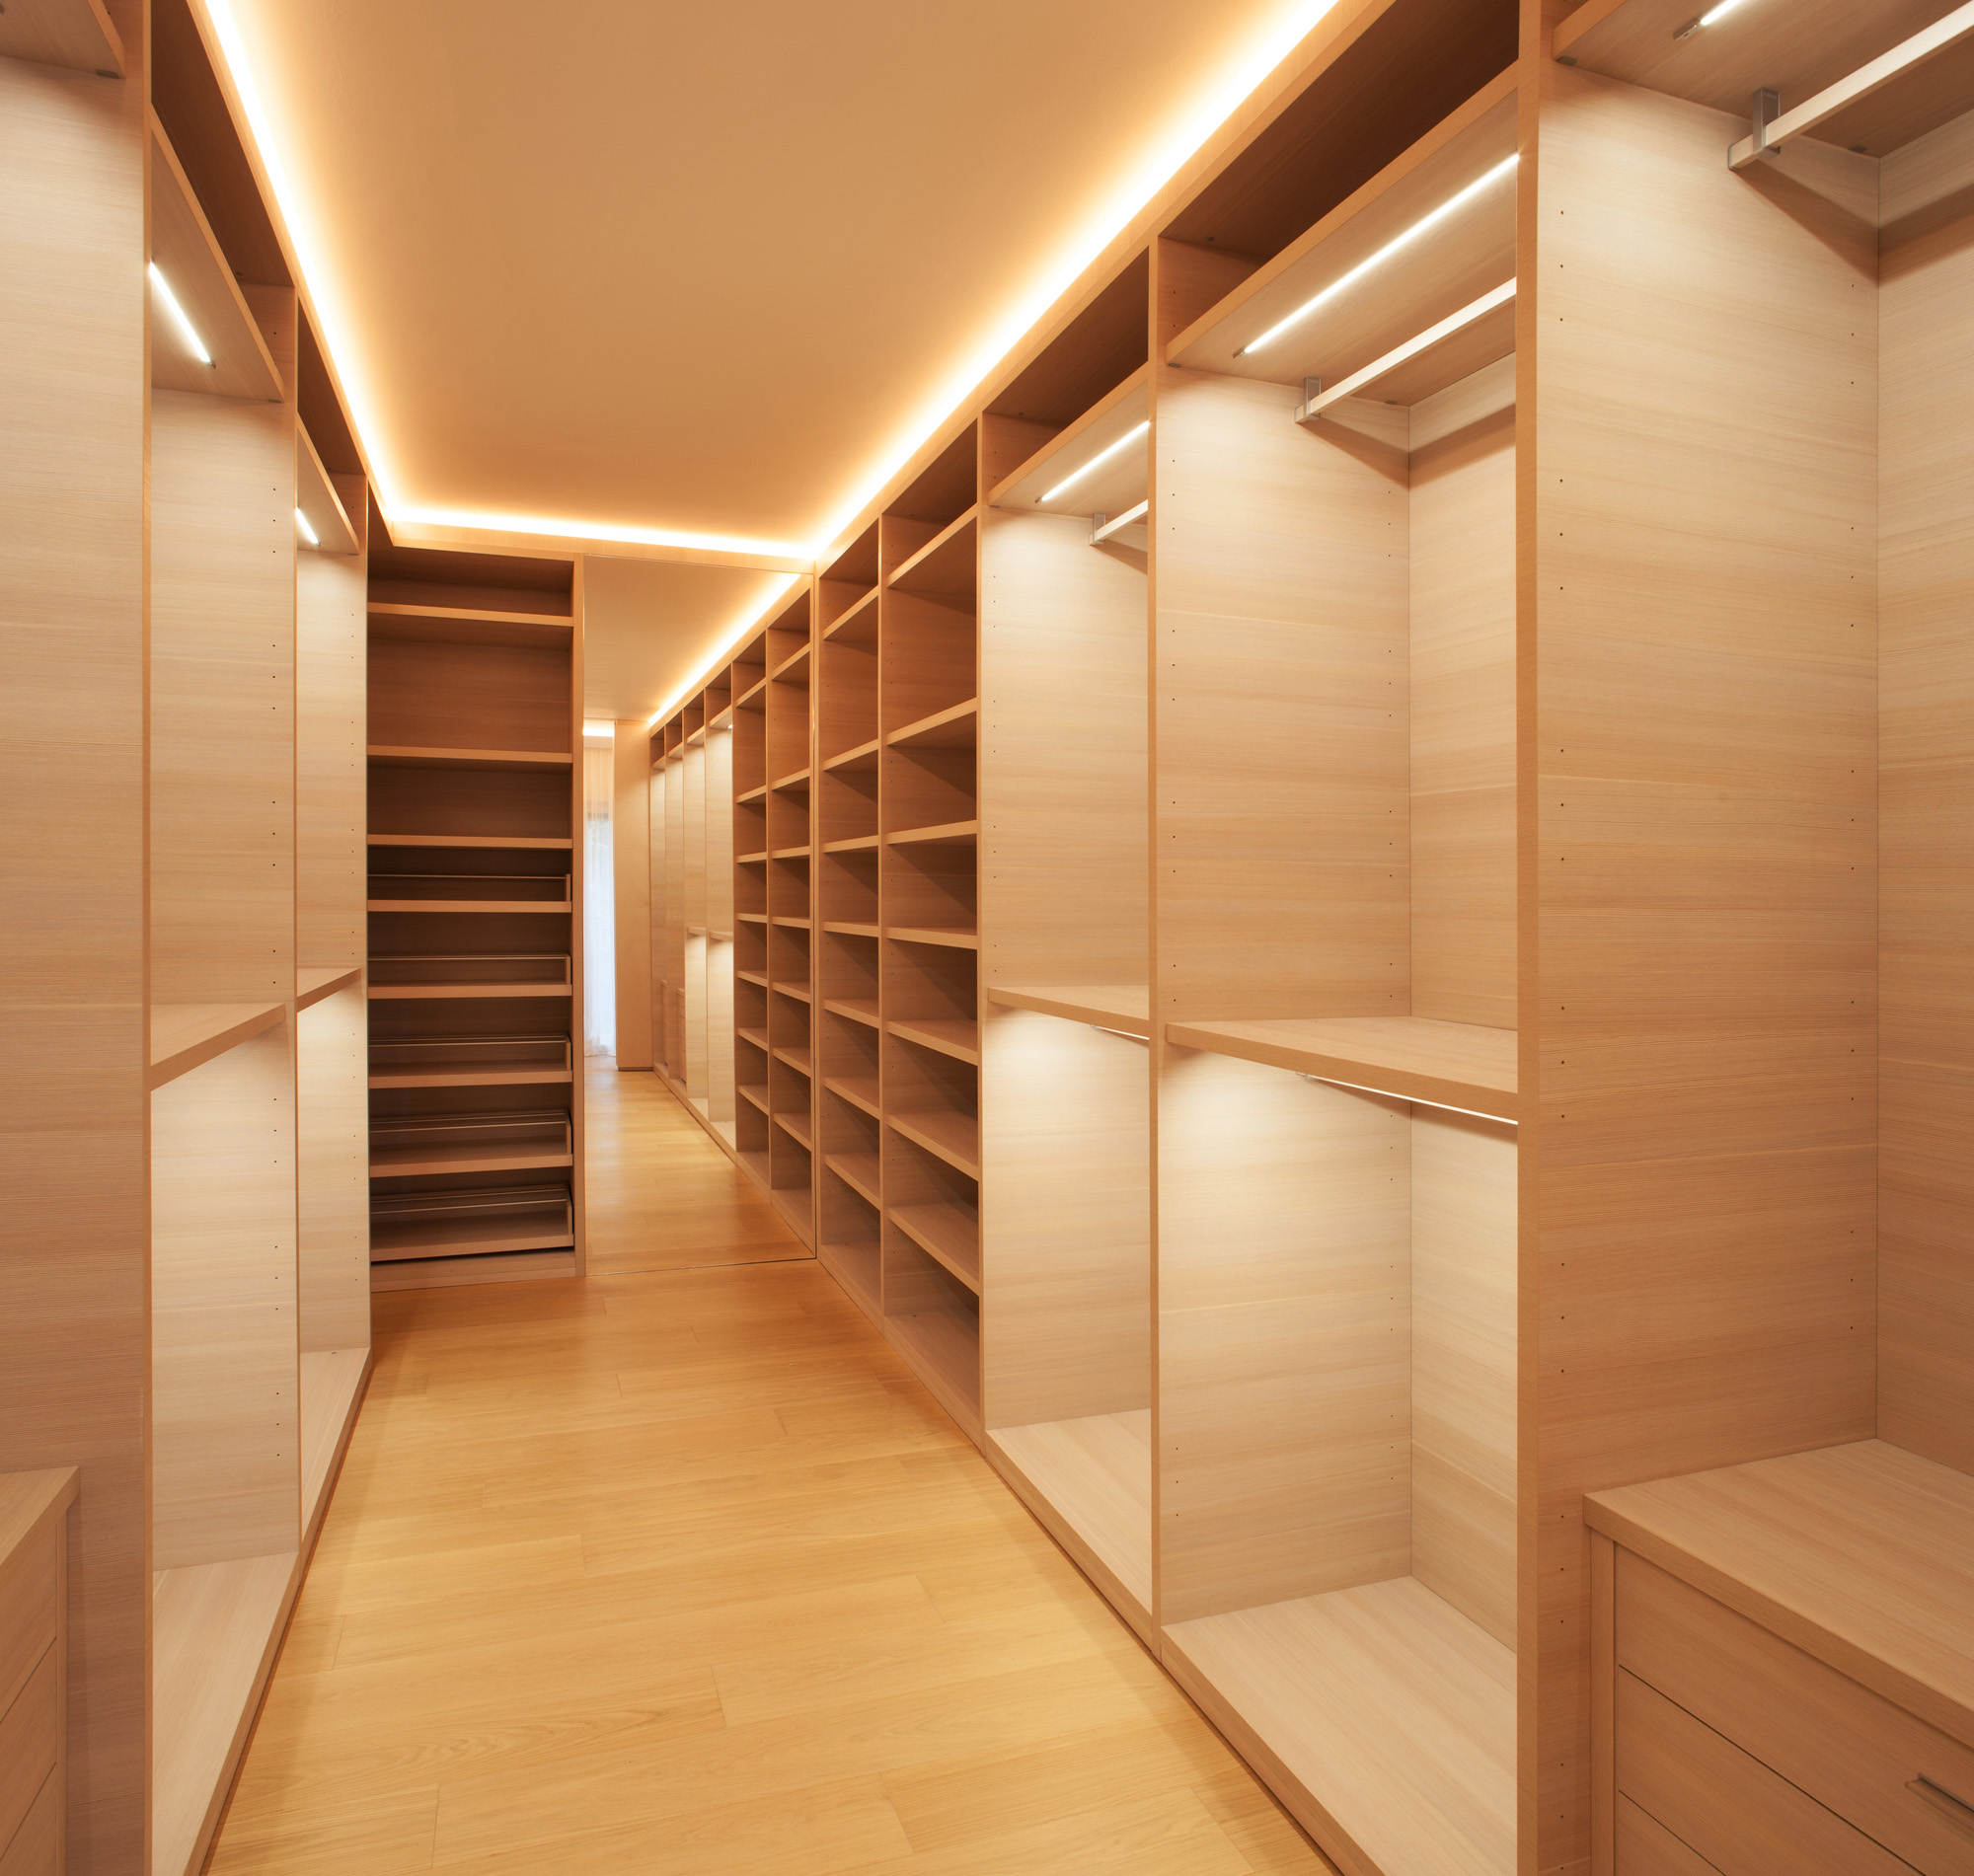 dressing room, open wardrobe ideas, bespoke wardrobes, wardrobe lights